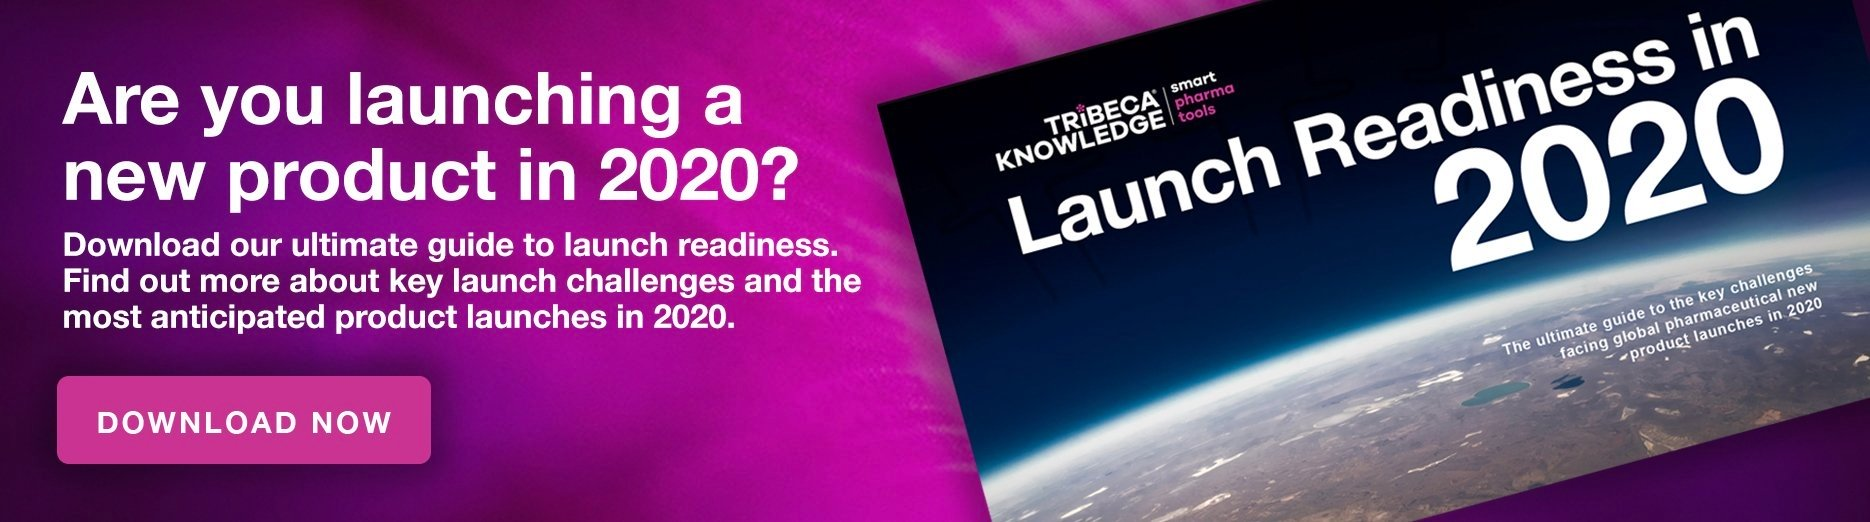 Launch Readiness in 2020 - TRiBECA Guide